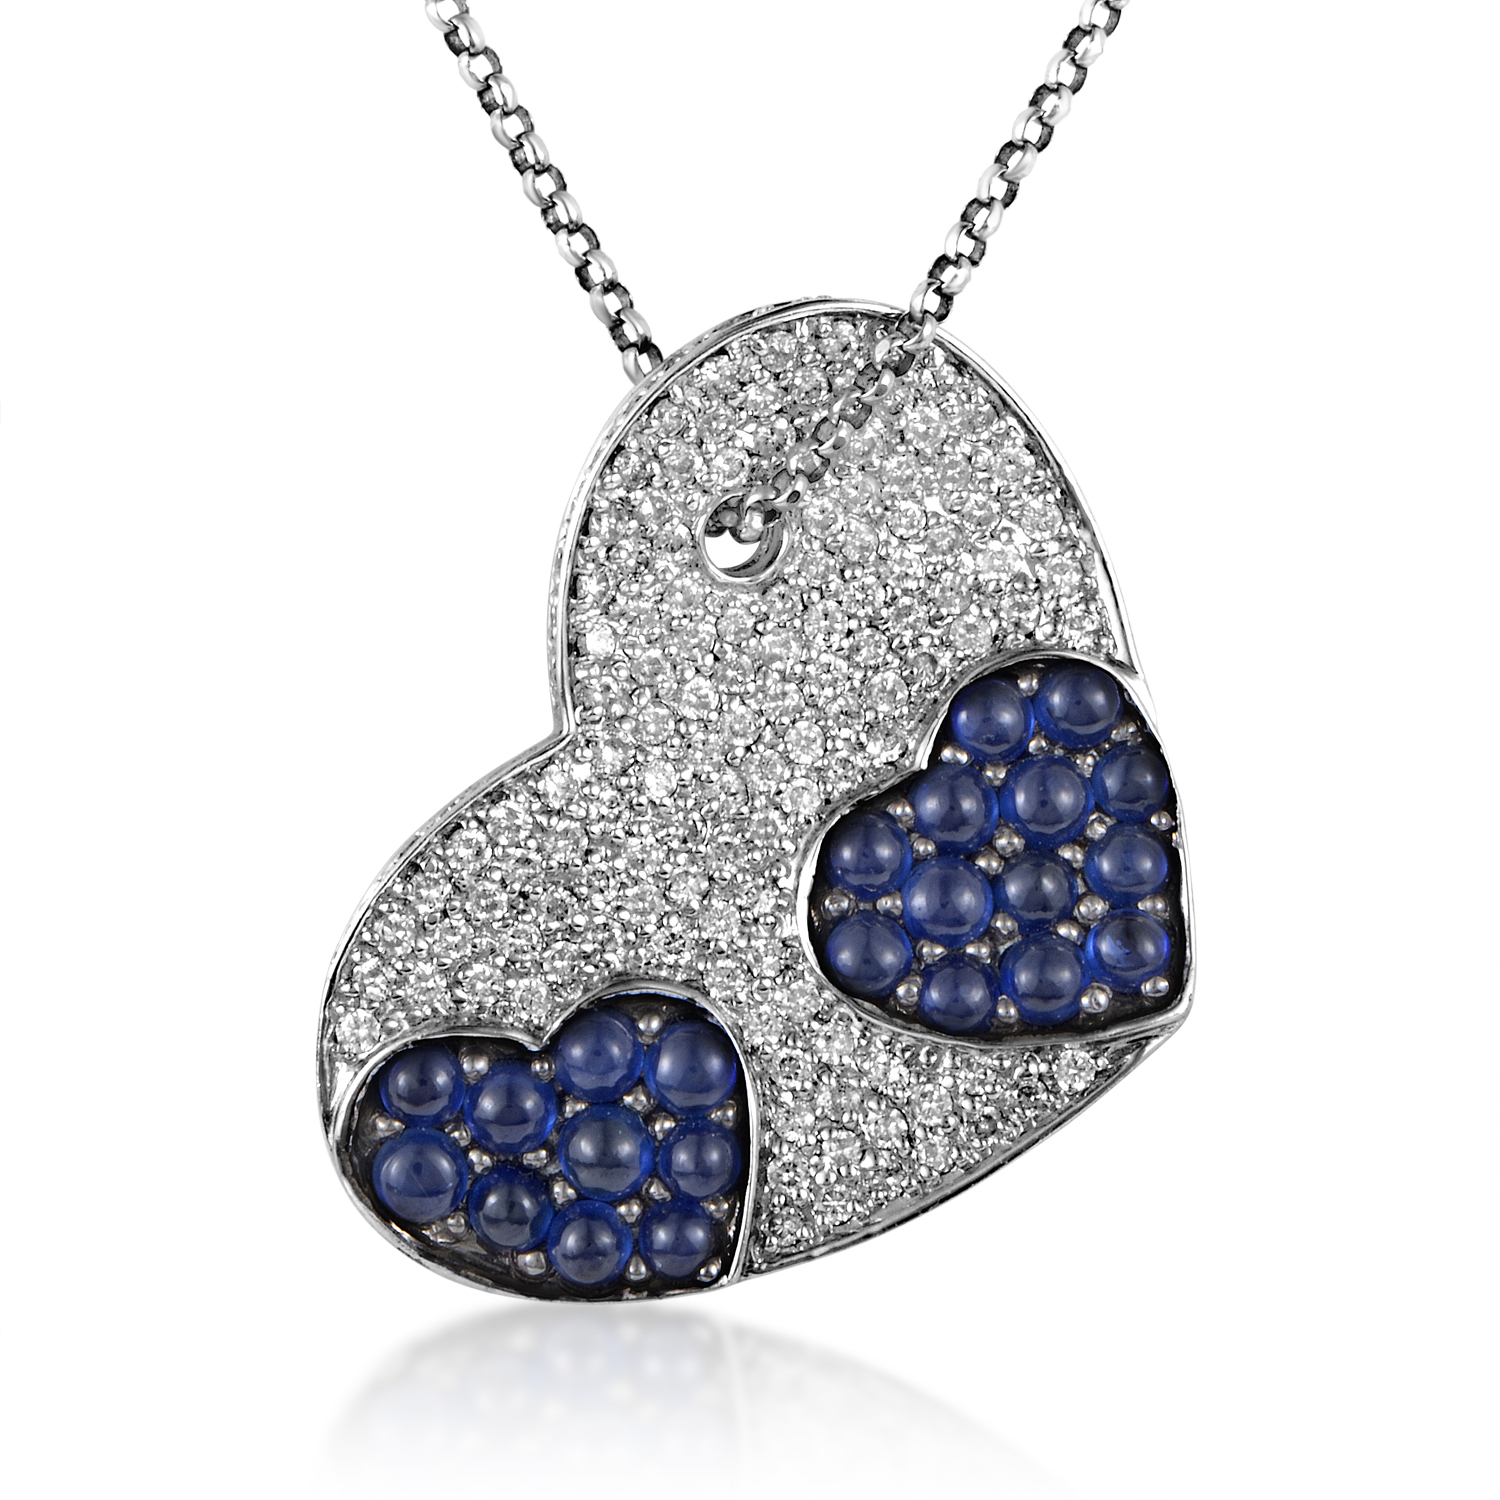 Women's 18K White Gold Diamond & Sapphire Heart Pendant Necklace 230-00004